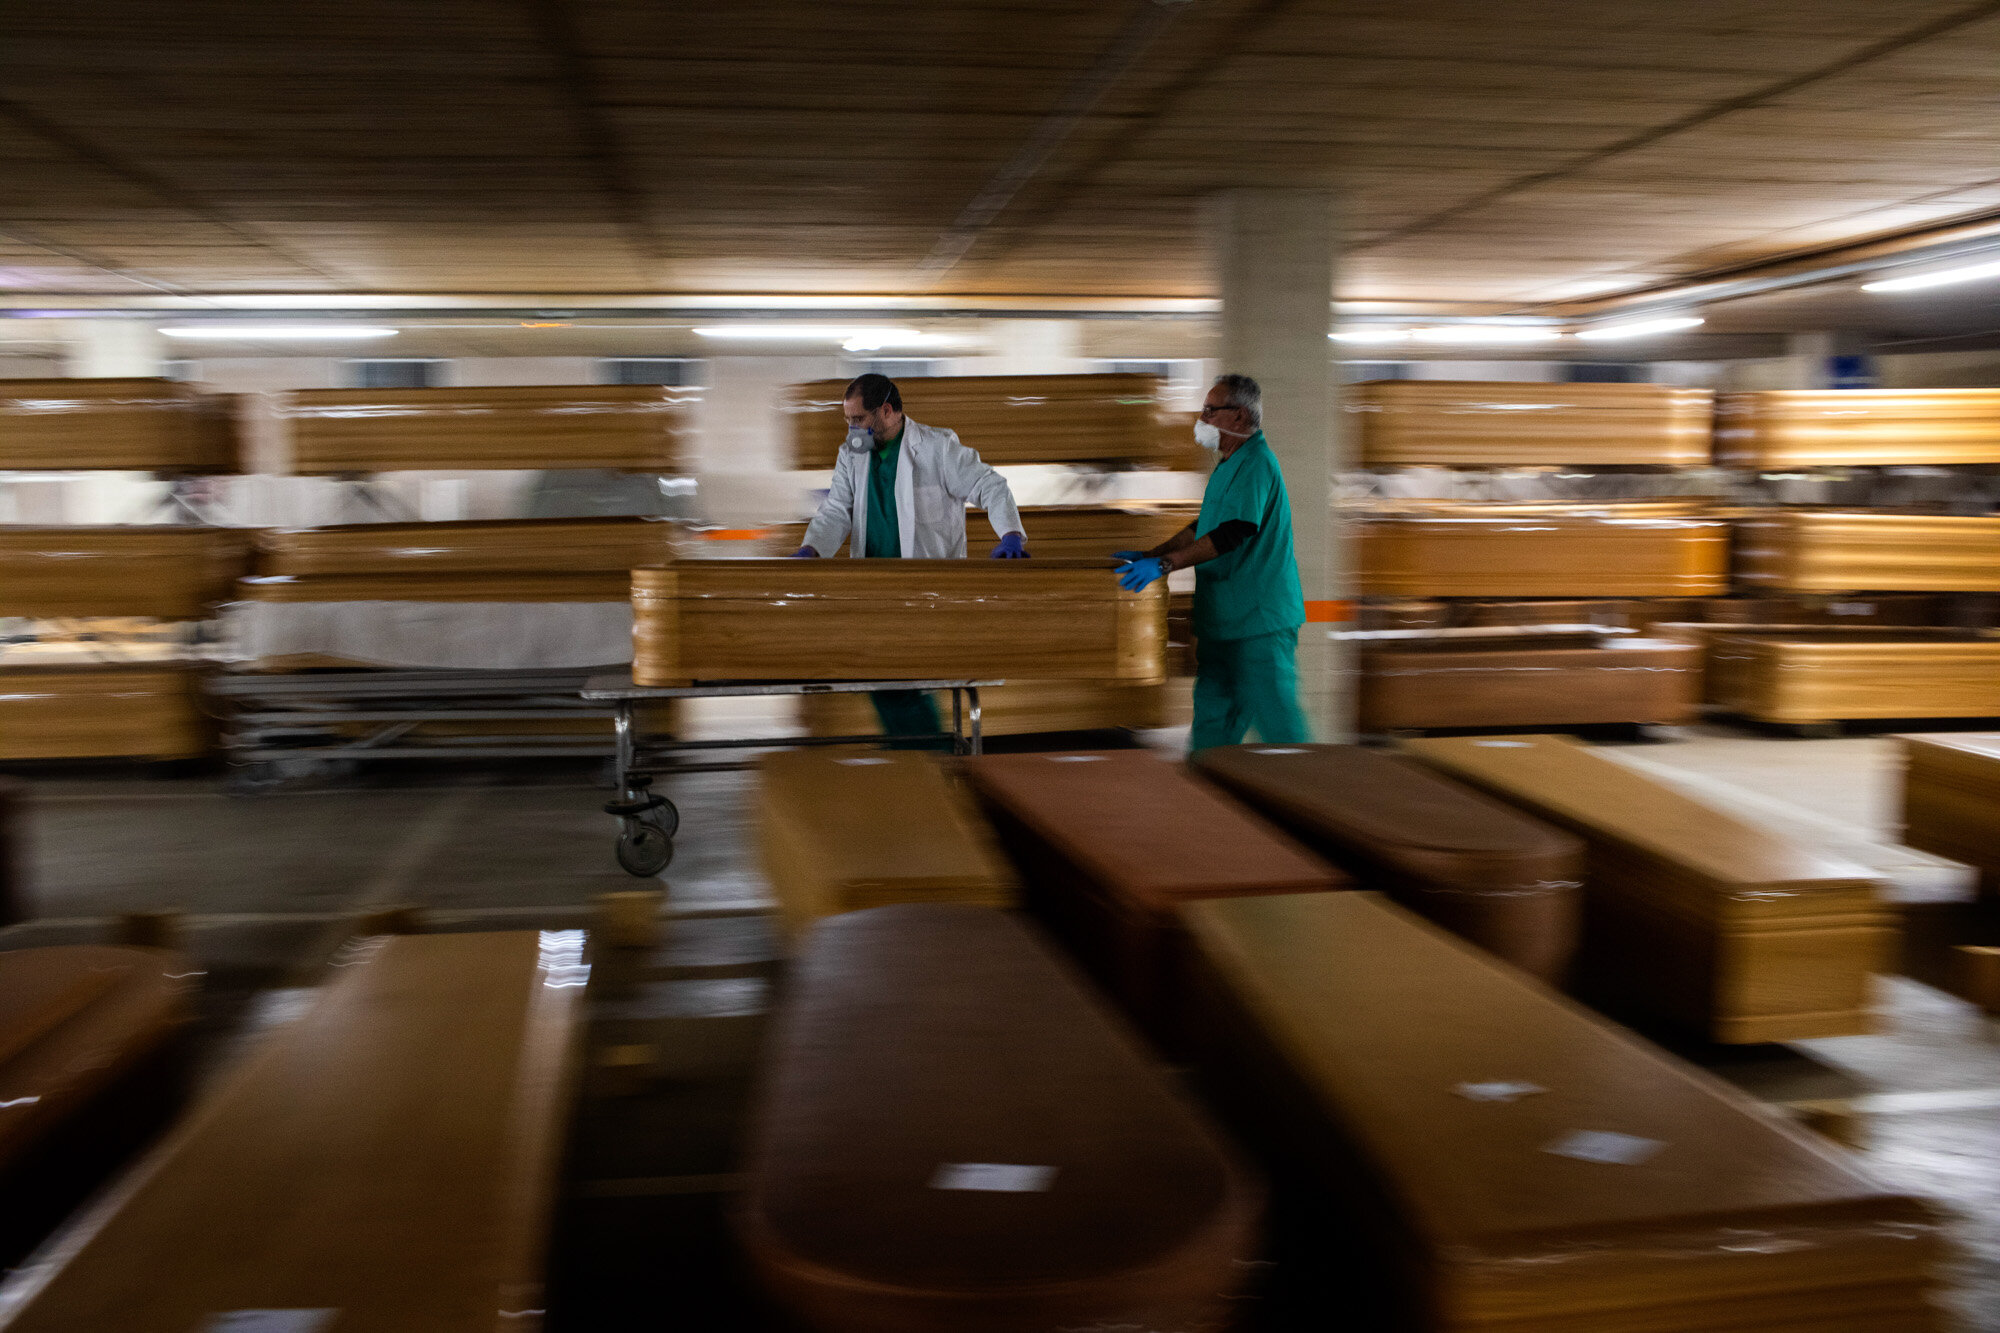 Workers move a coffin with the body of a victim of COVID-19 as other coffins are stored waiting for burial or cremation at the Collserola morgue in Barcelona, Spain, on April 2, 2020. (AP Photo/Emilio Morenatti)